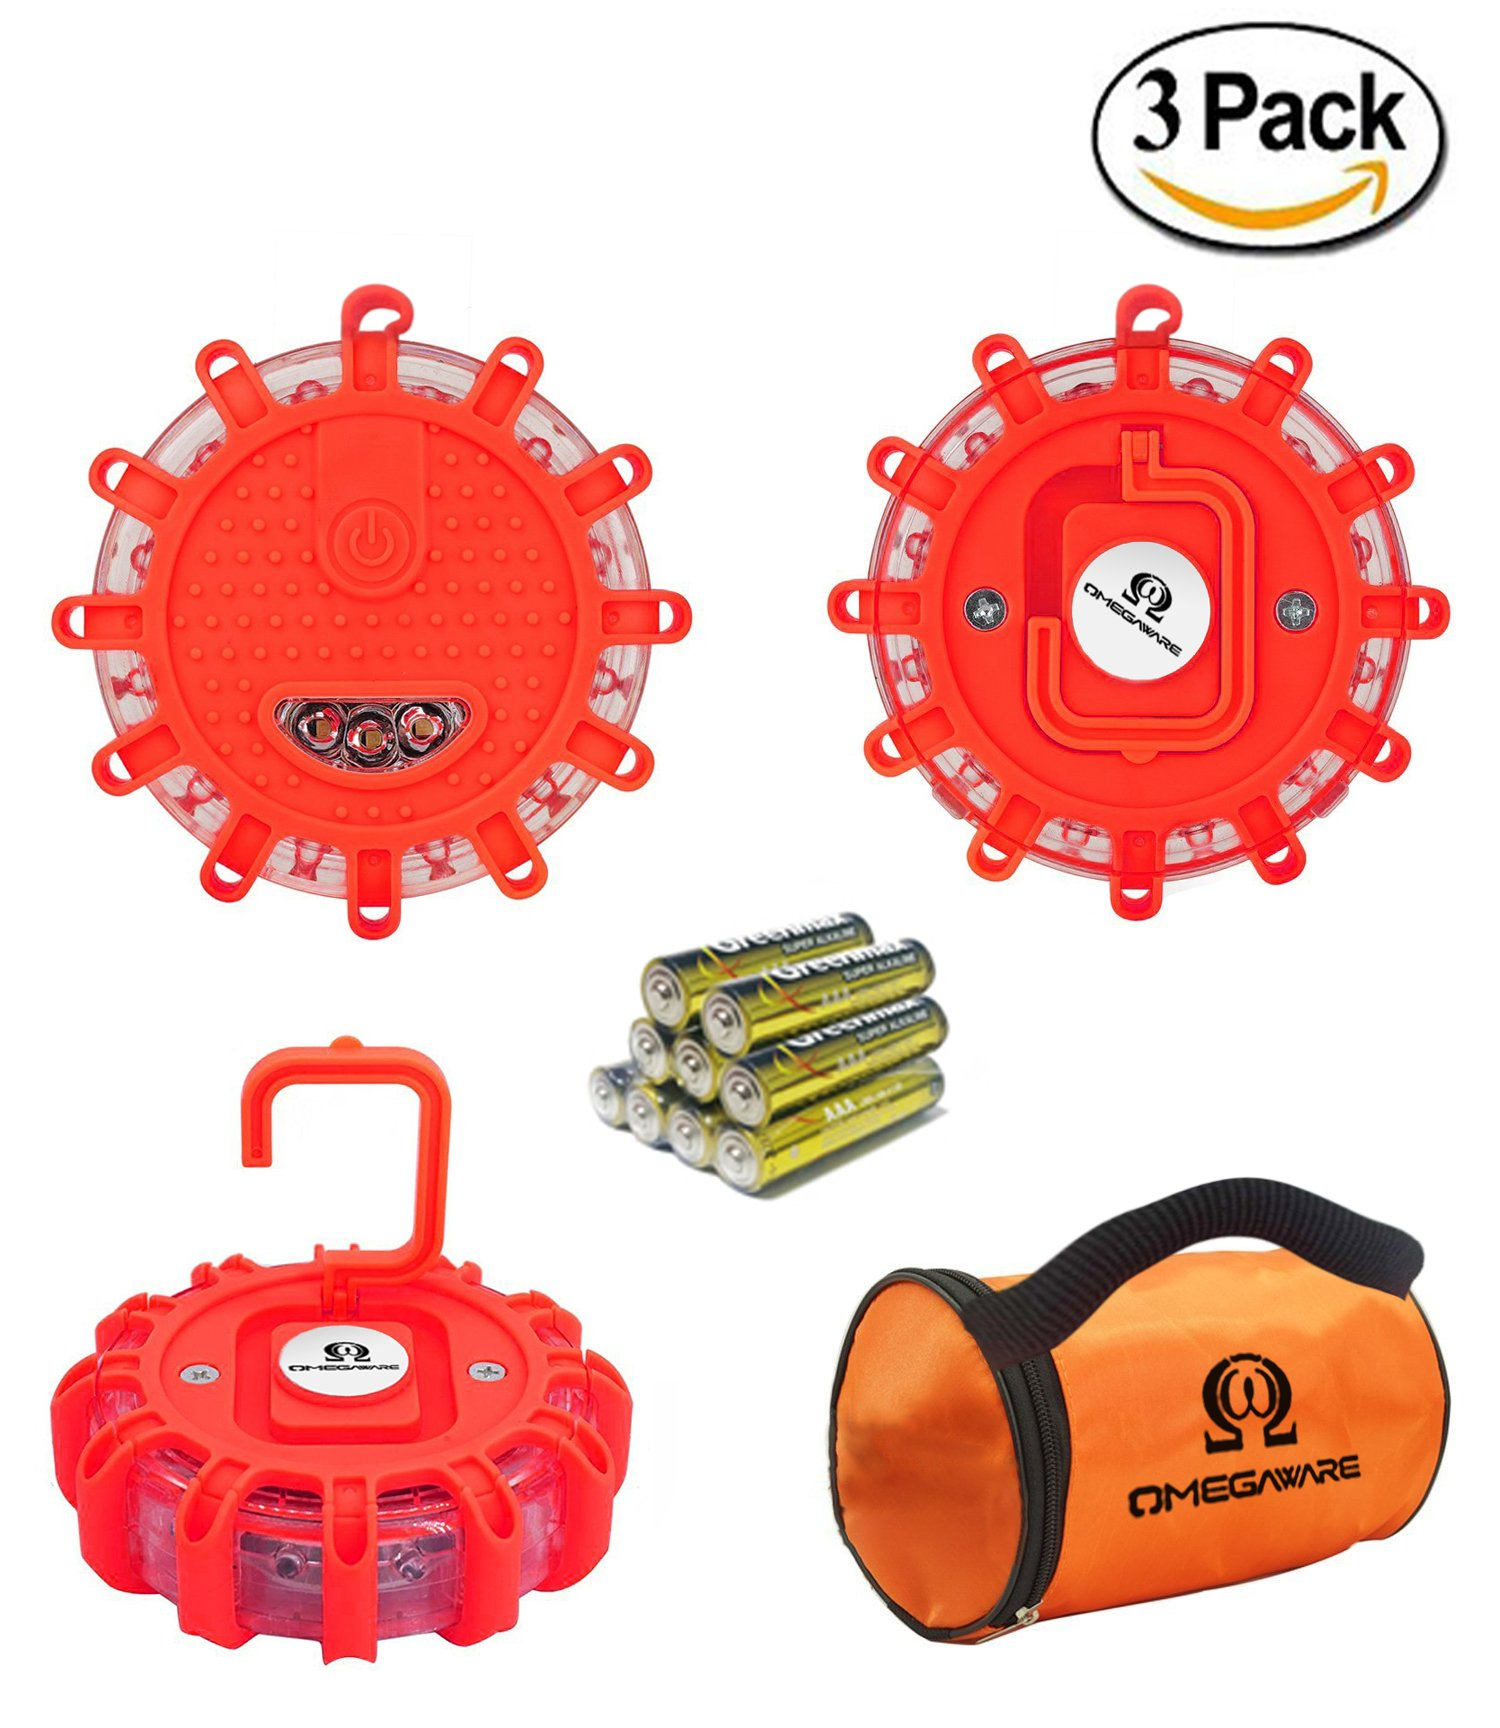 Best rated in industrial warning lights helpful customer reviews led road flares omegaware emergency roadside safety disc marine flashing light beacon for car truck boat with storage bag and batteries red pack of 3 biocorpaavc